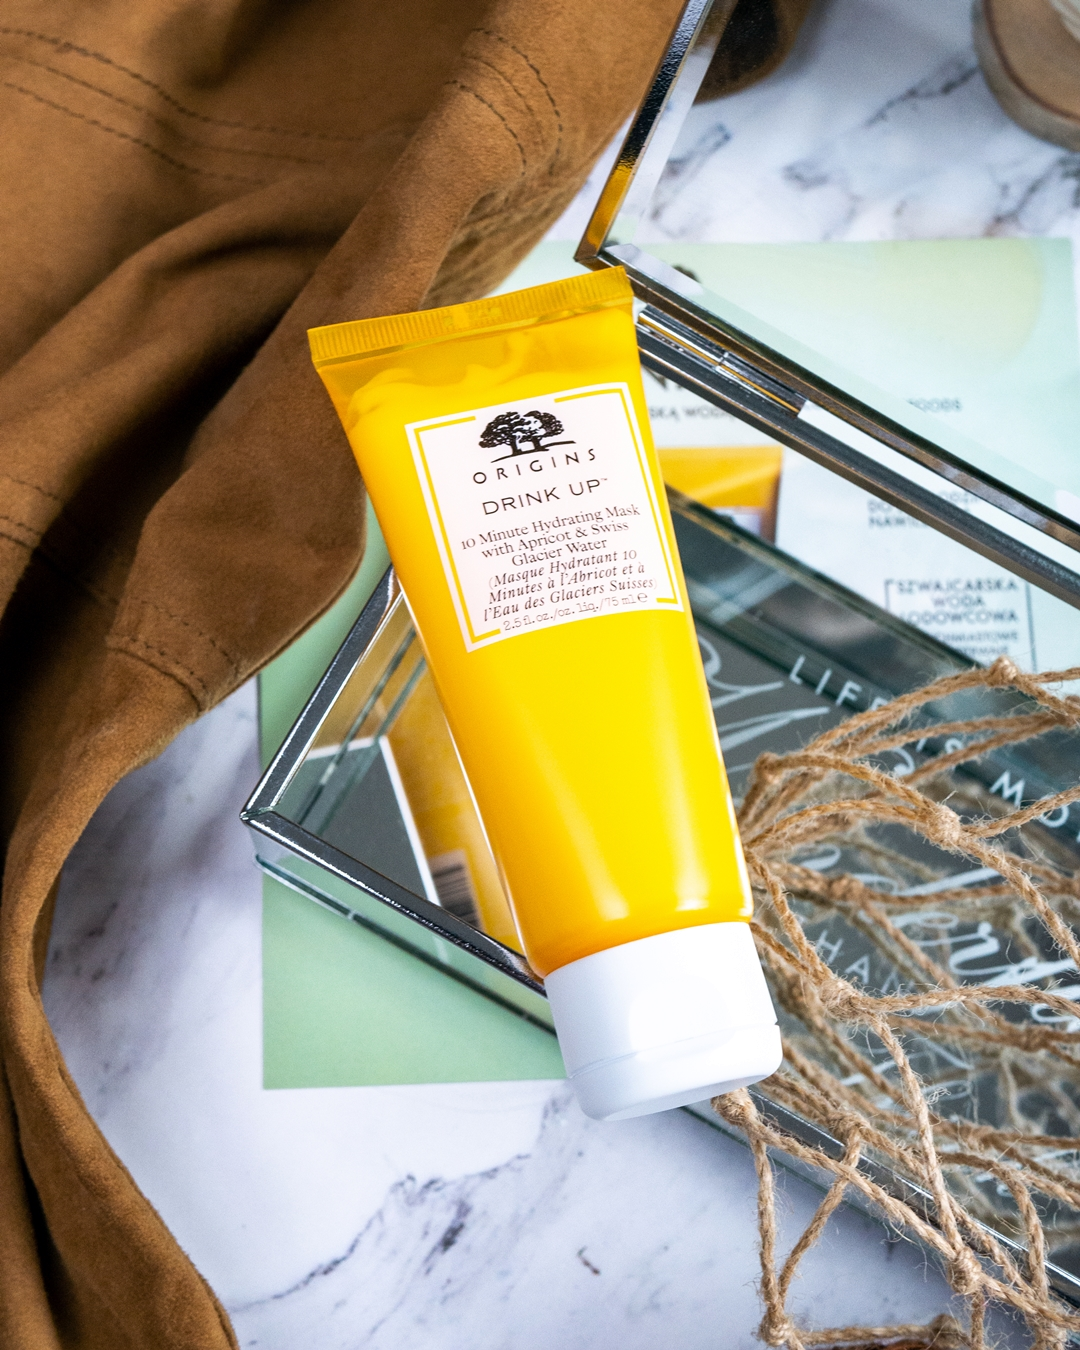 Origins Drink Up 10 Minute Hydrating Mask